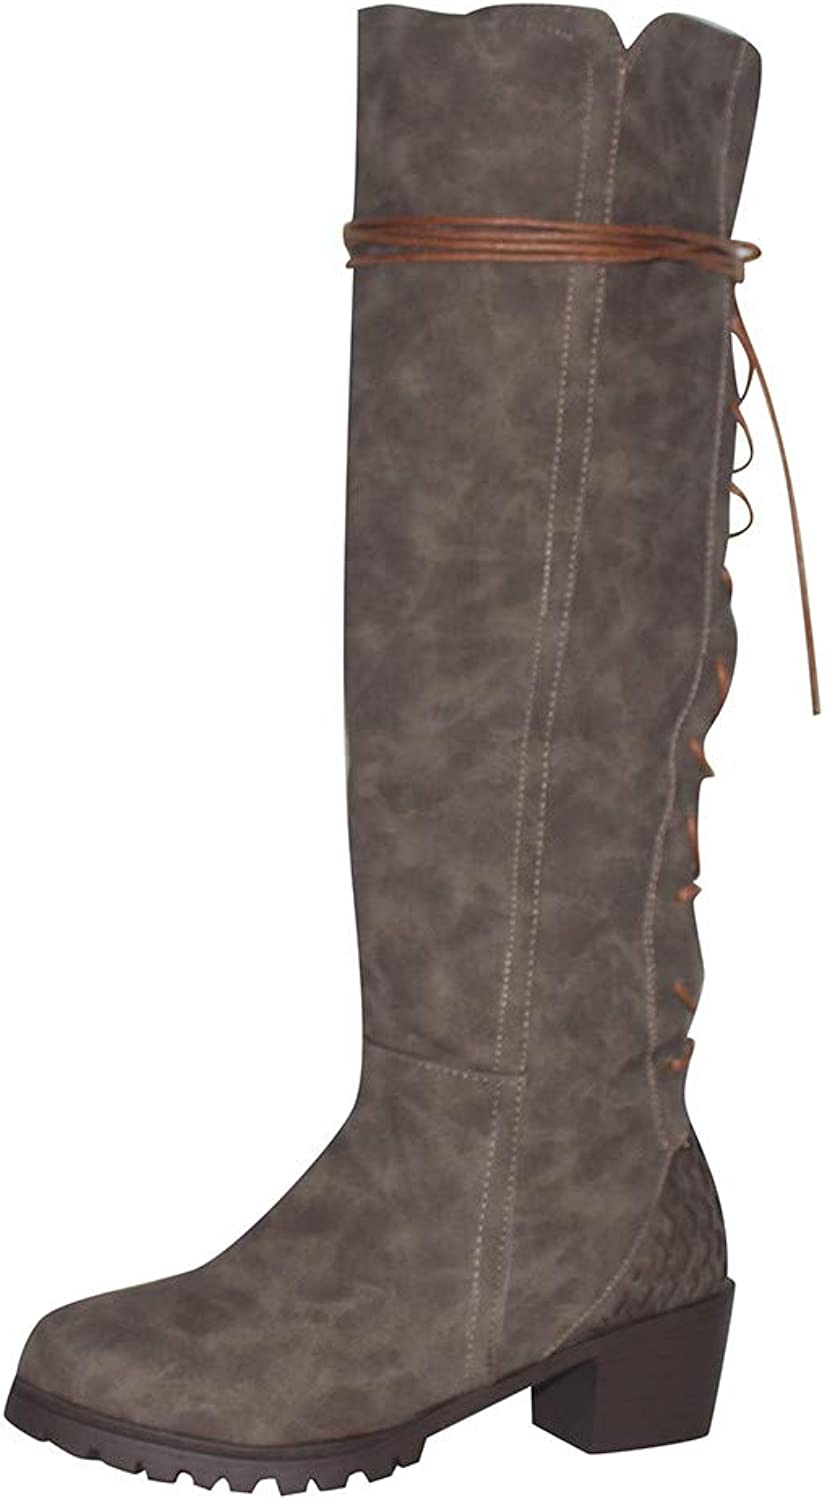 ASTV Women Retro Wild Knee High Boots Leather Side Cross-Tied Riding Boots